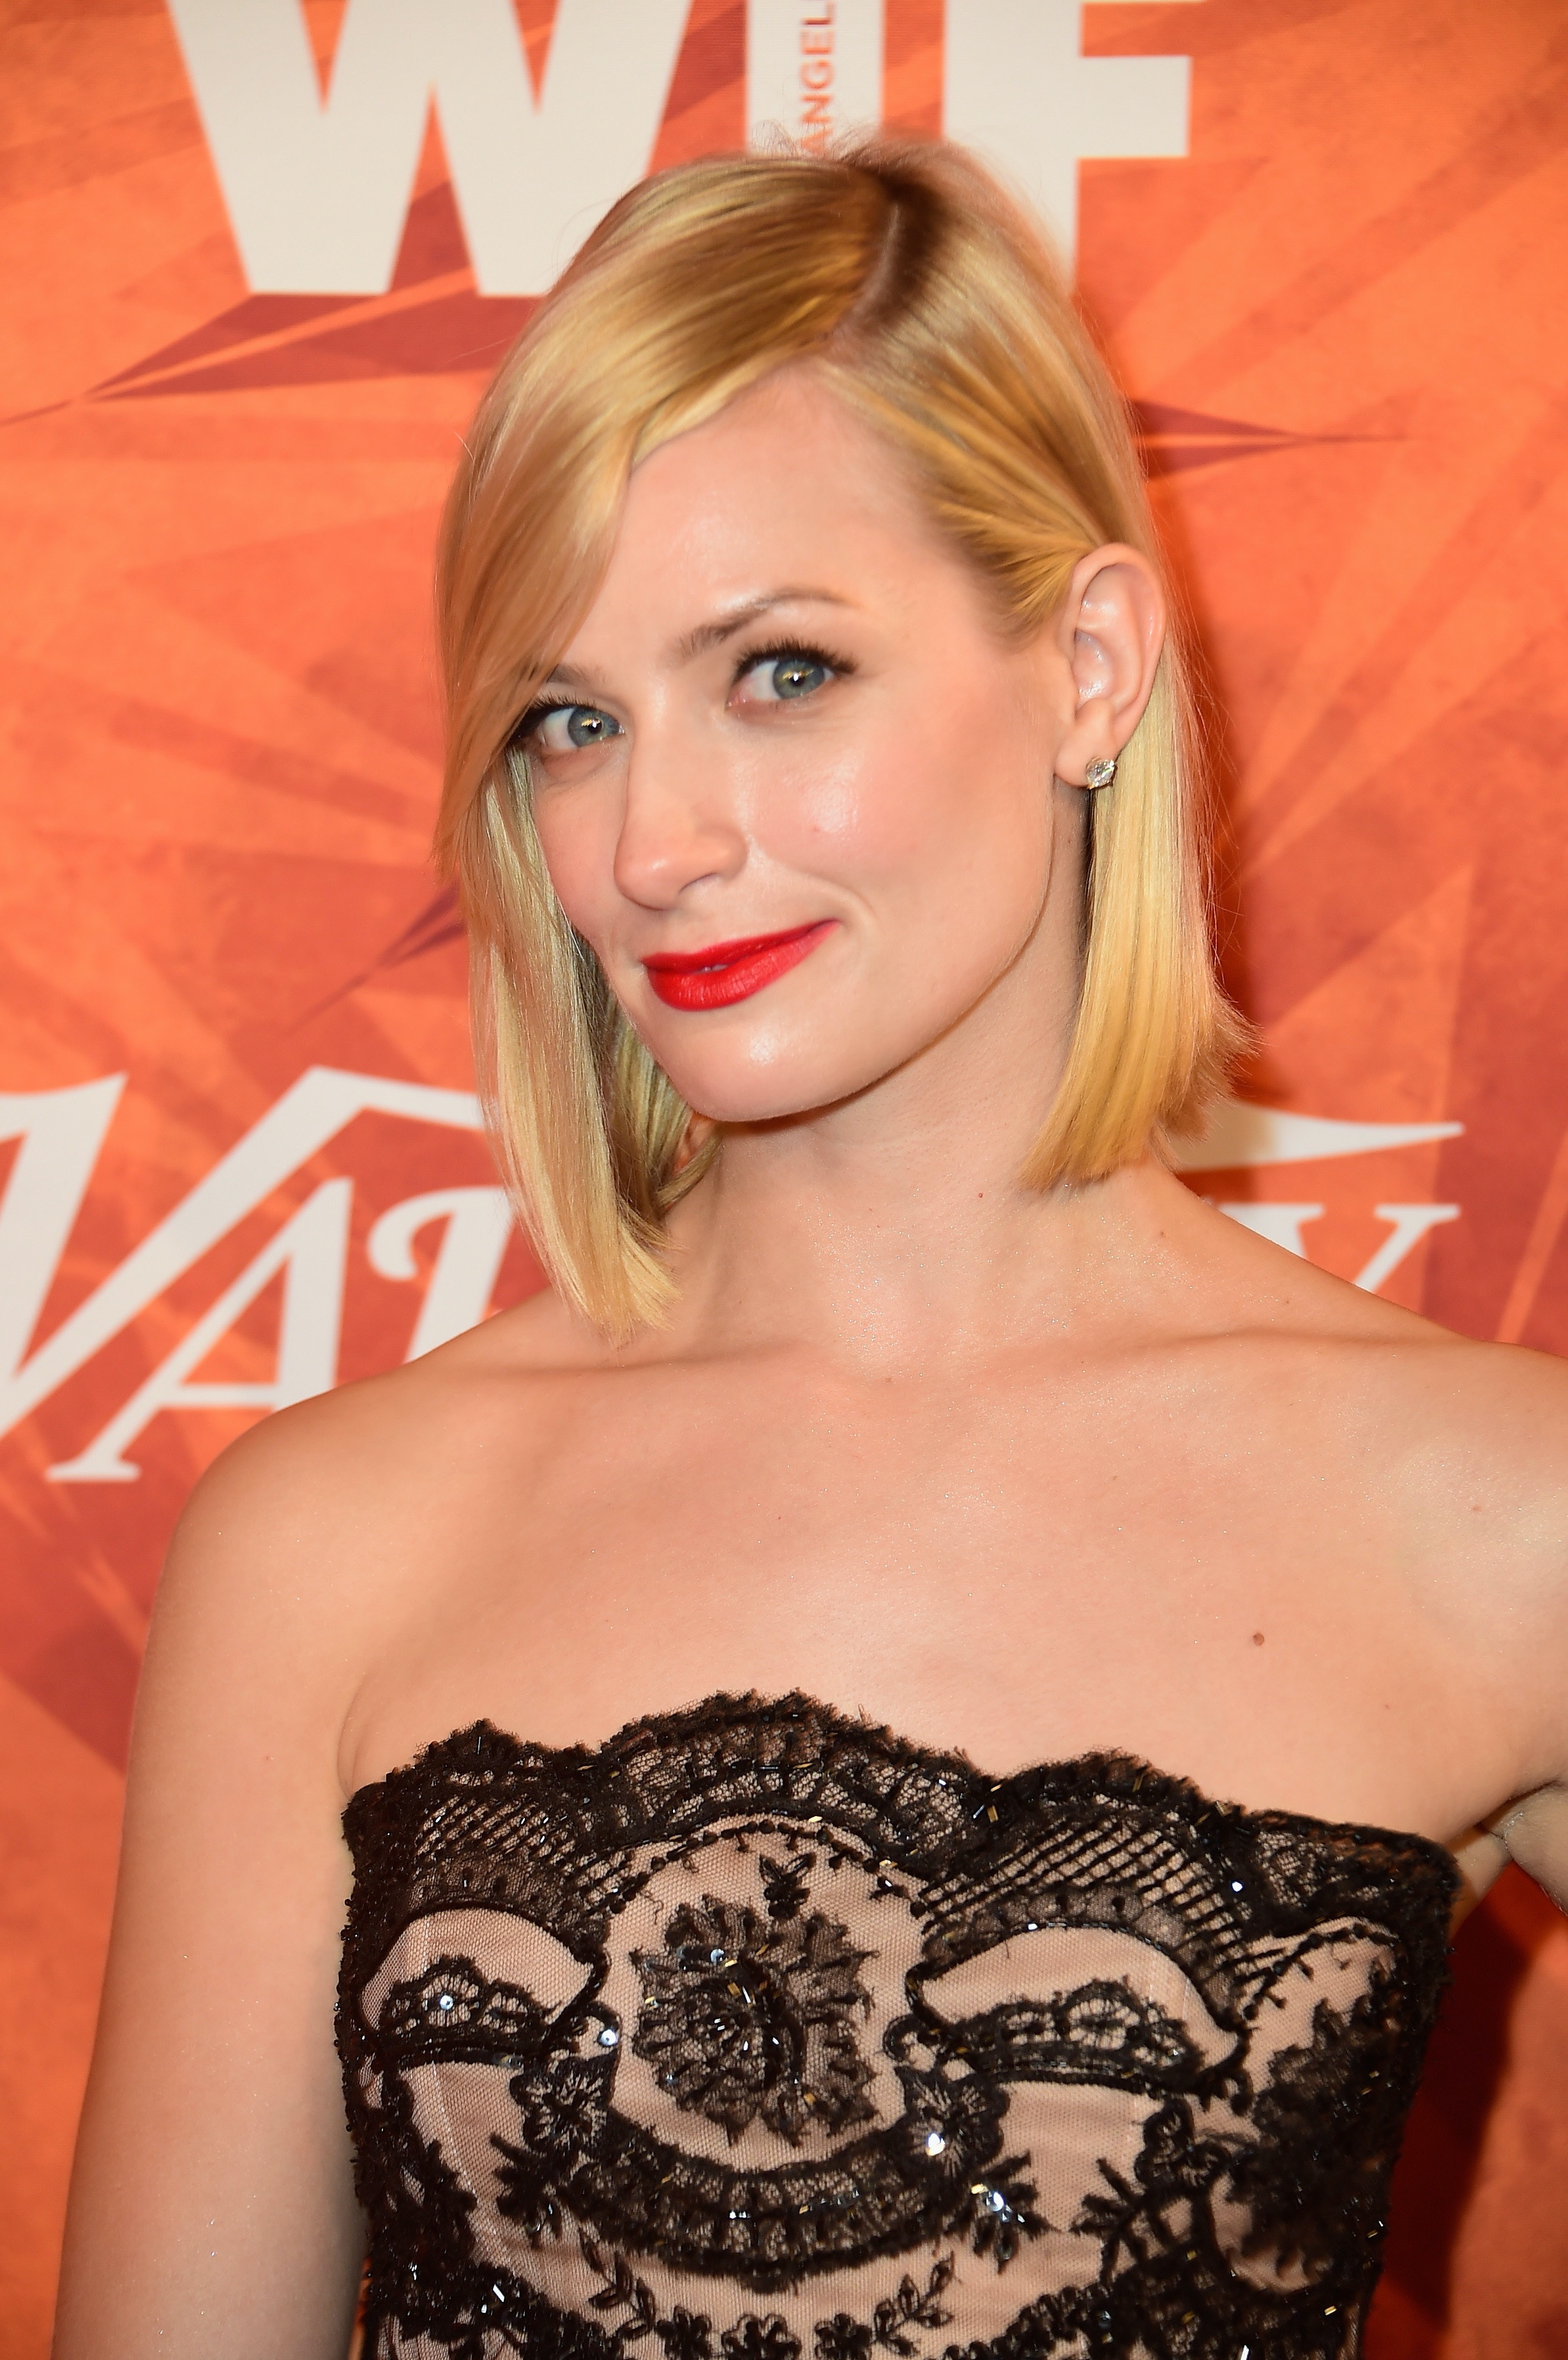 Beth Behrs of '2 Broke Girls' Will Serve Up Life Lessons And Health Tips, Thanks To New Book Deal